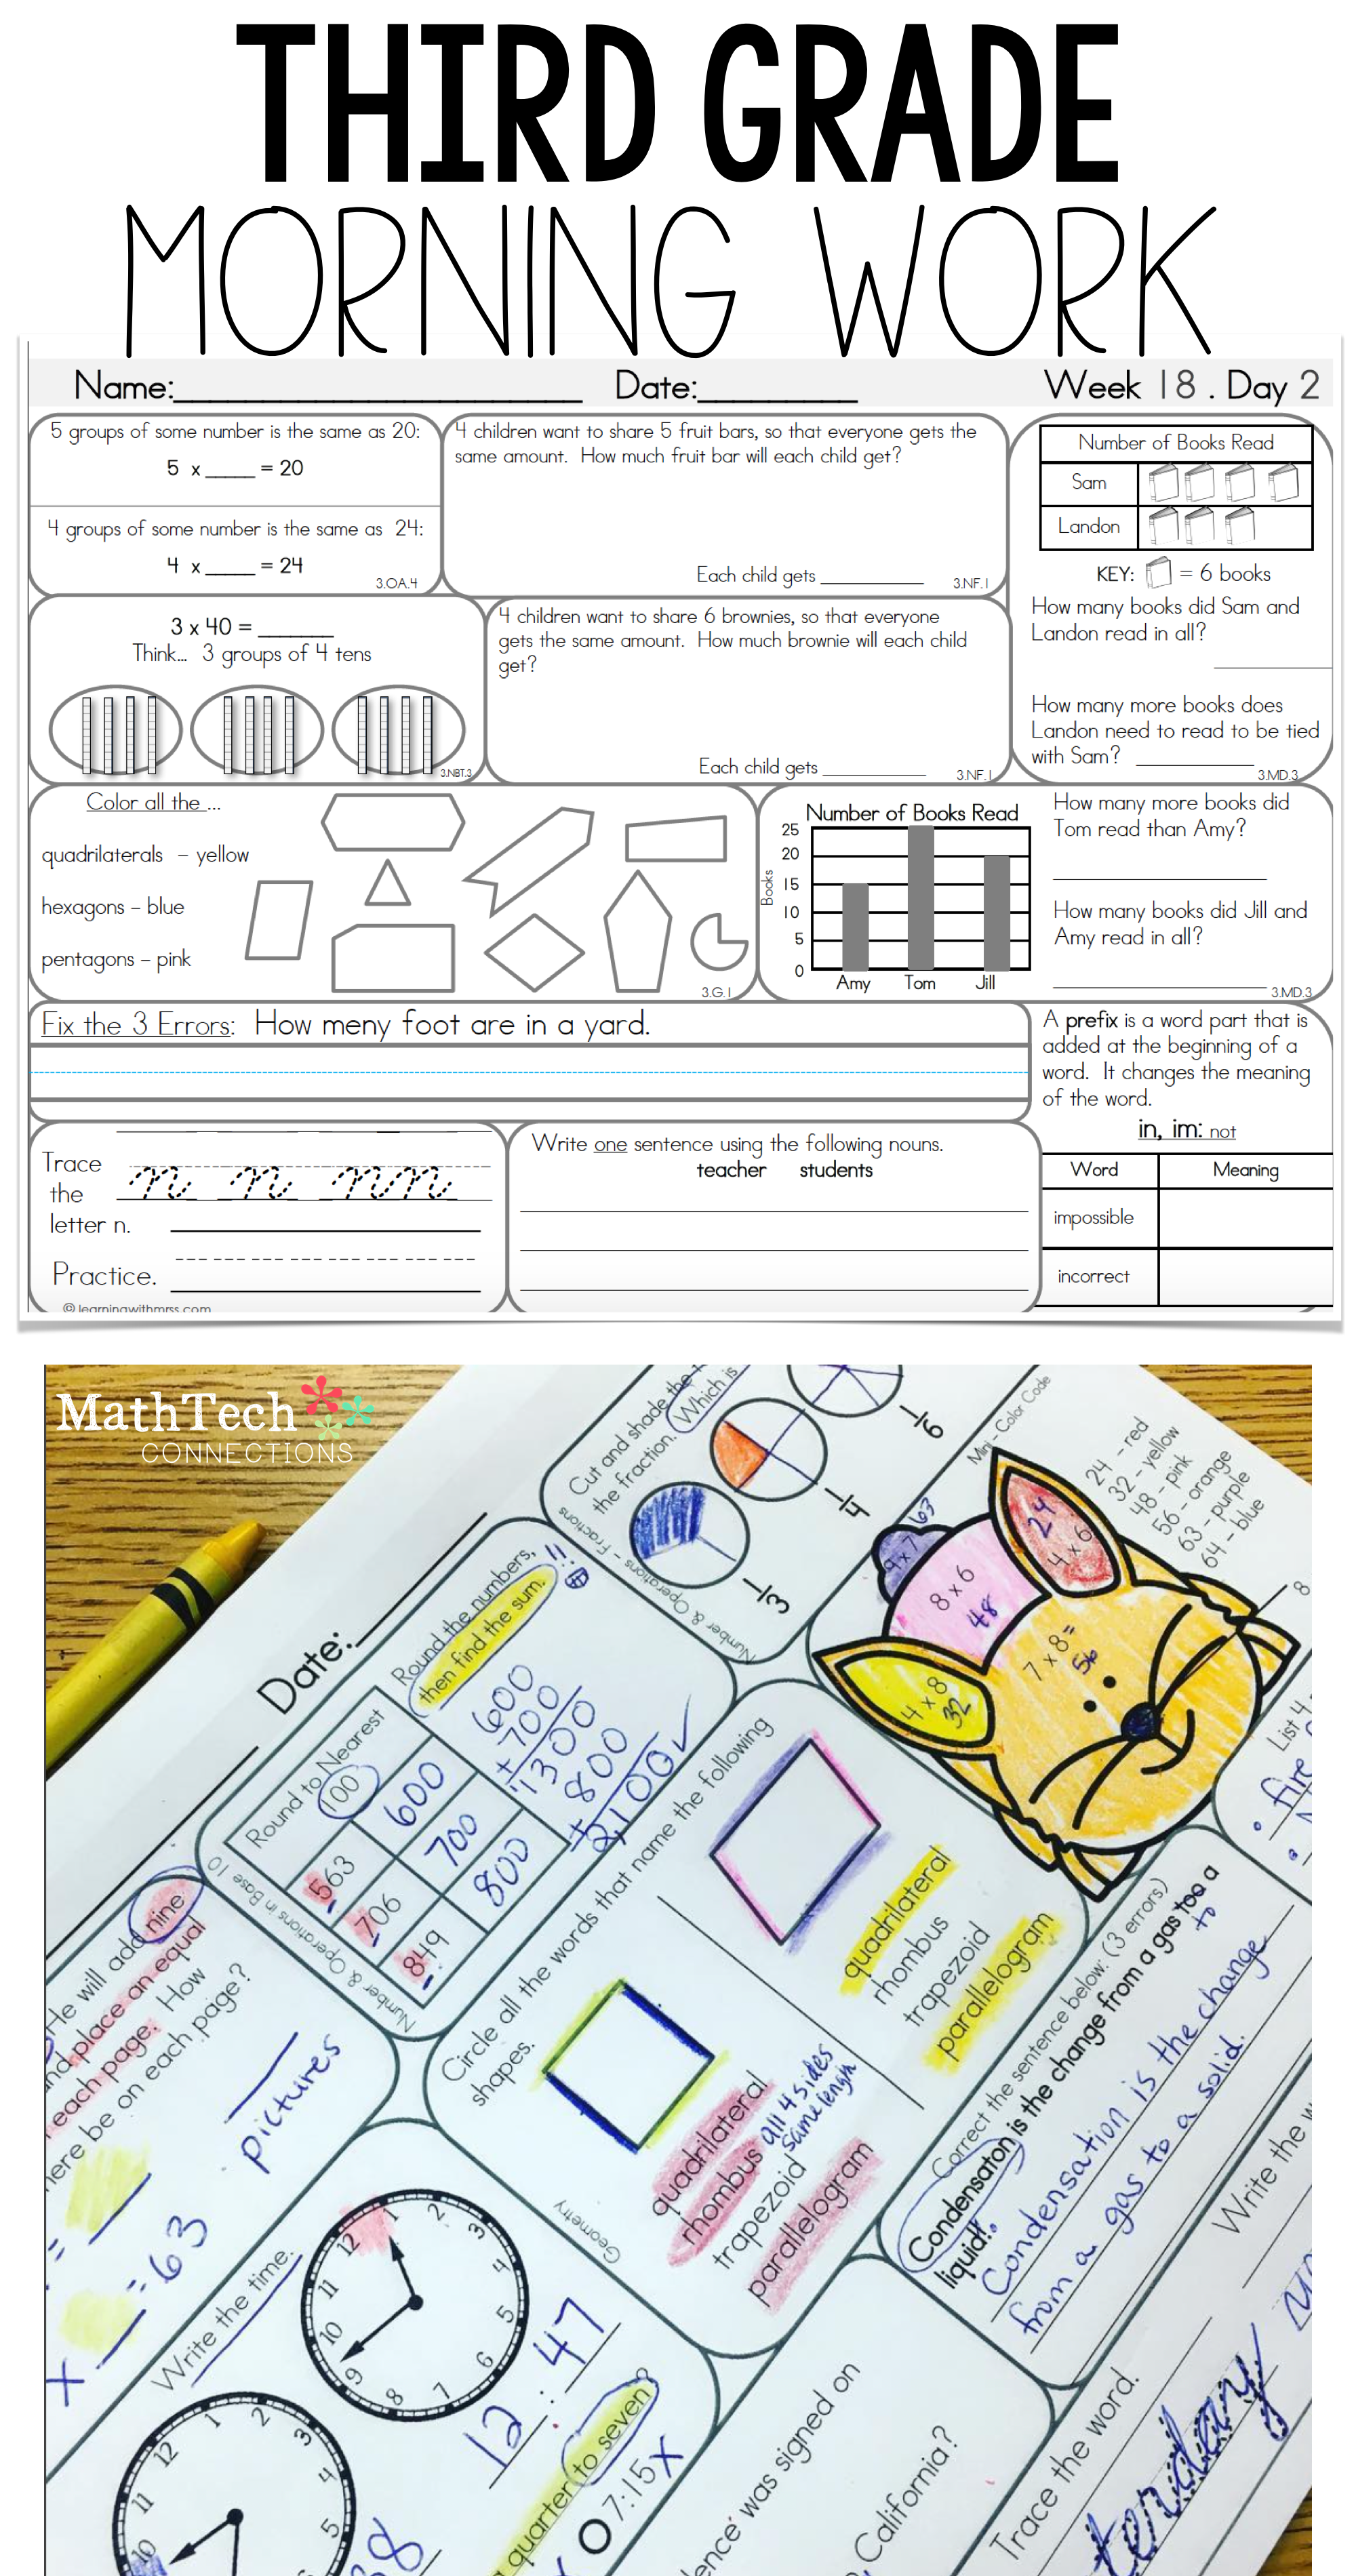 hight resolution of Morning Work 3rd Grade Math Worksheets   Printable Worksheets and Activities  for Teachers